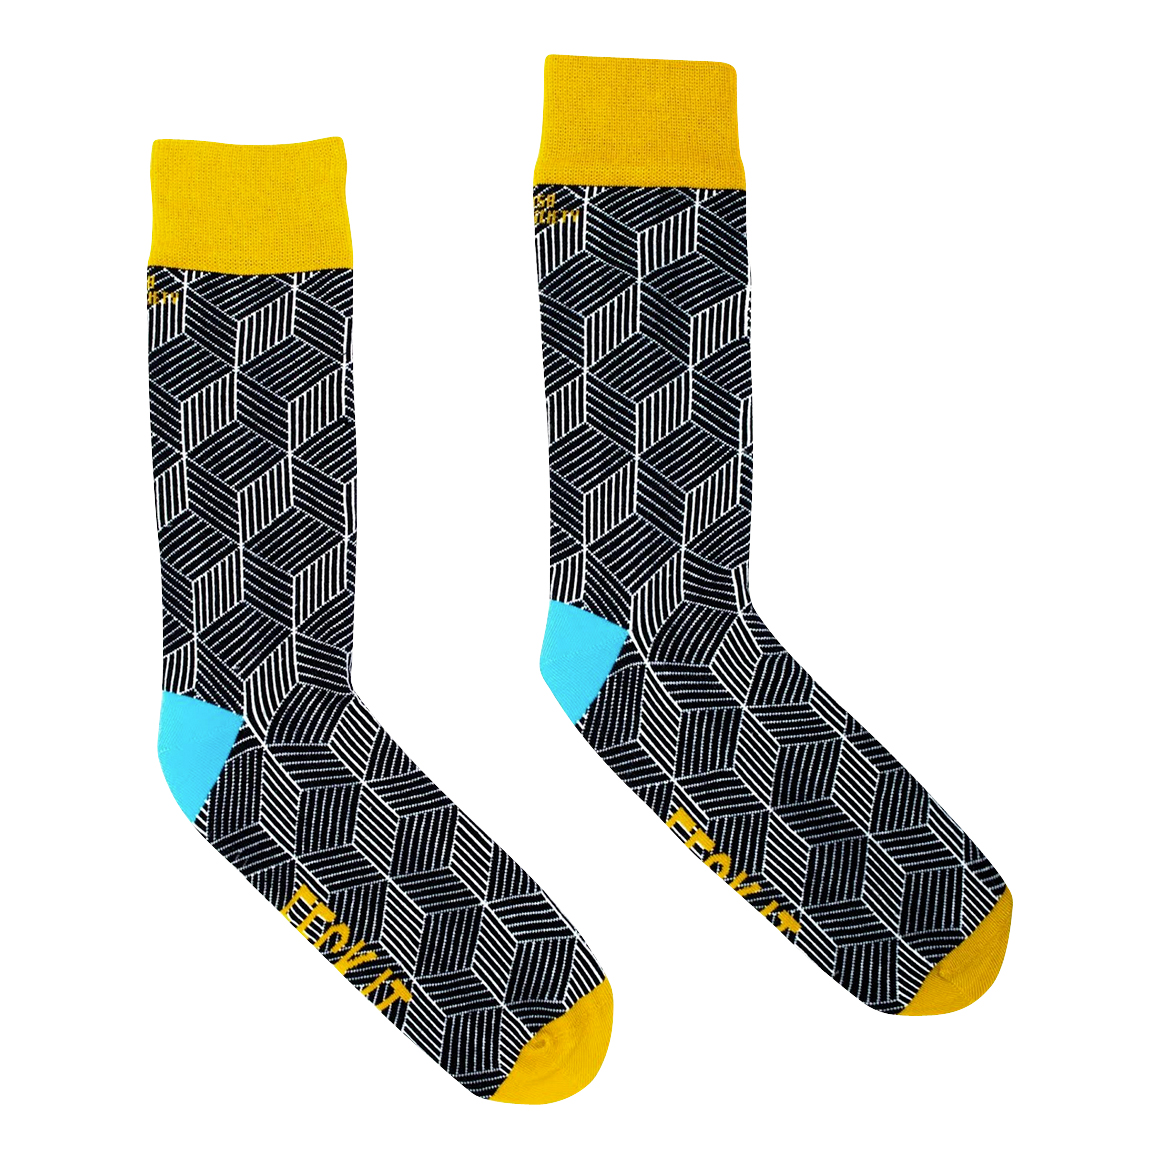 Irish Sock Society - 'Feck It' Socks - Black & Yellow